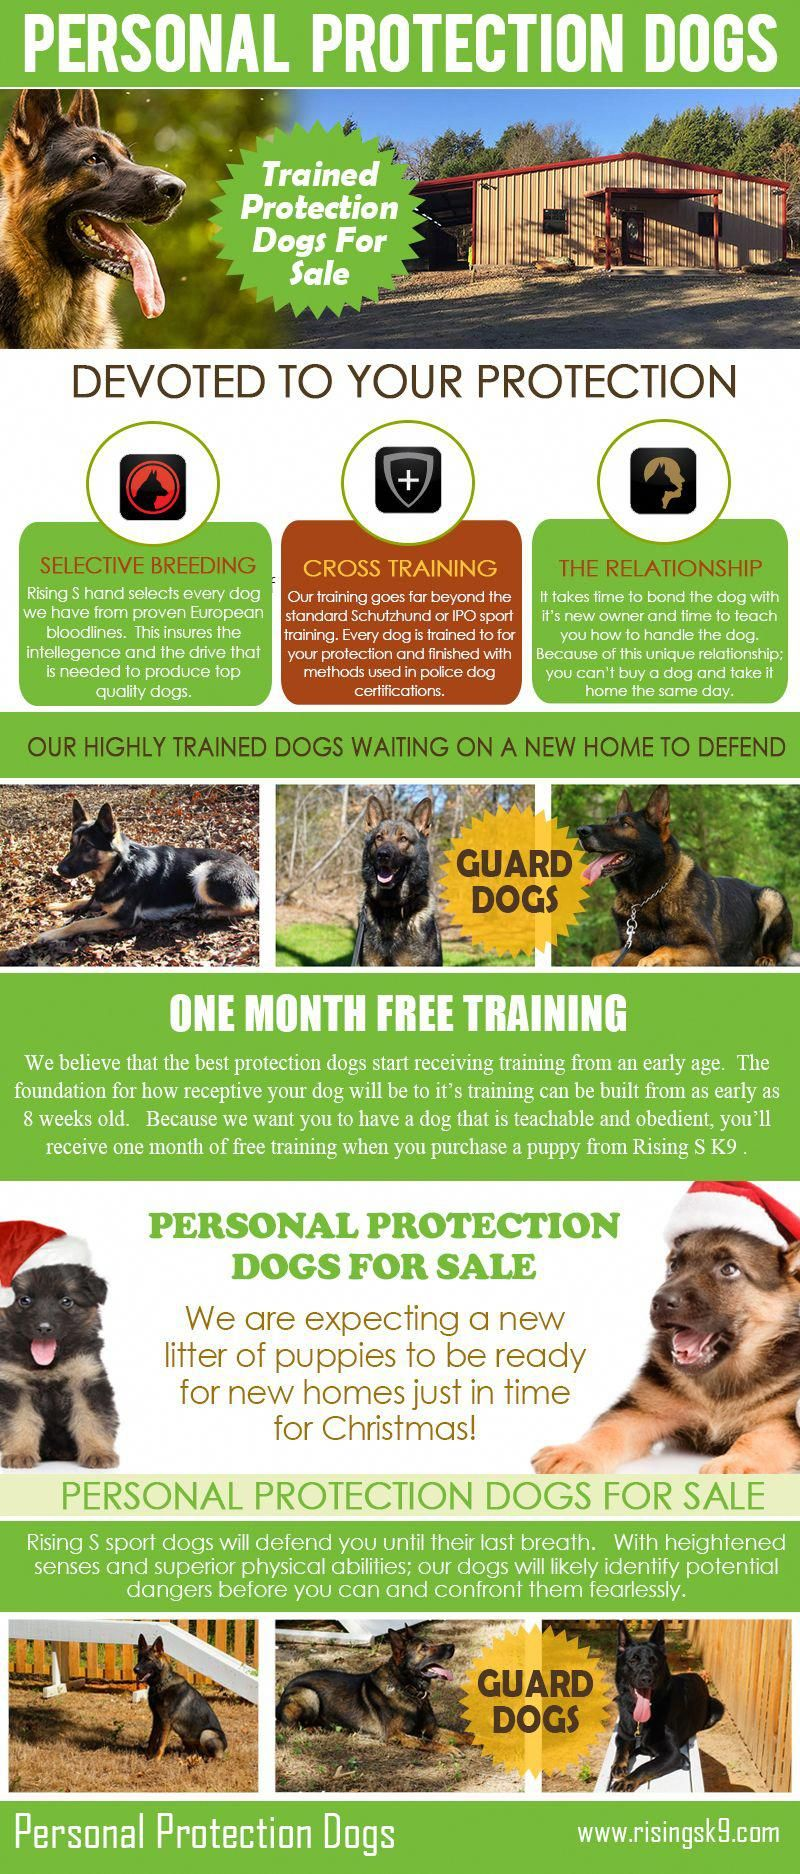 Dog Training For Agility Get All Of Your Dog Questions Answered